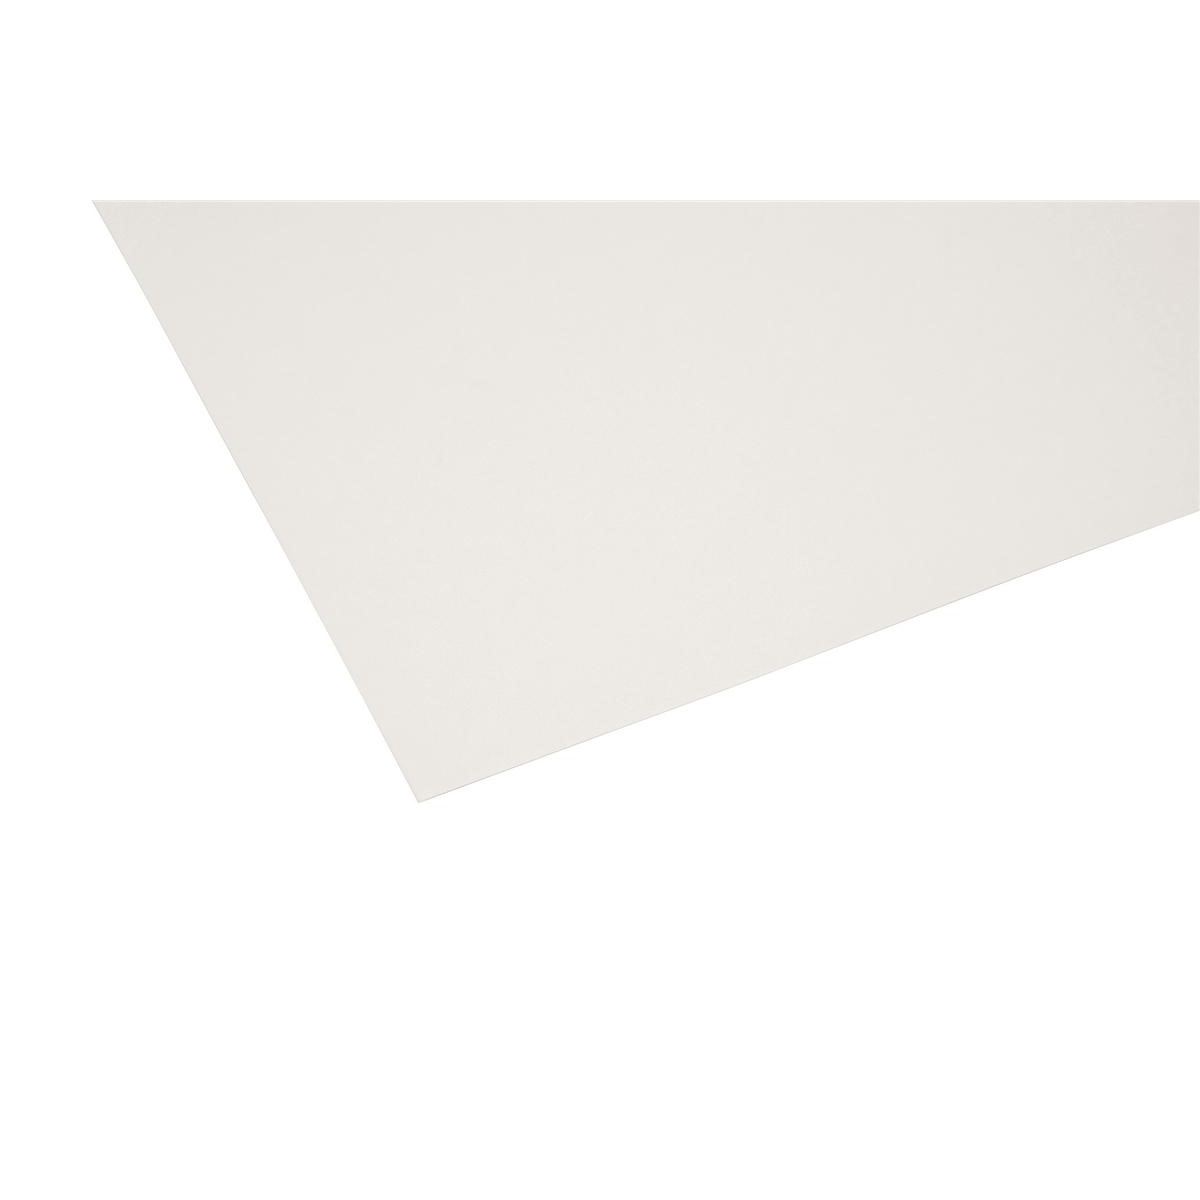 Blotting Paper Half Demy W445xD285mm Flat White 50 Sheets